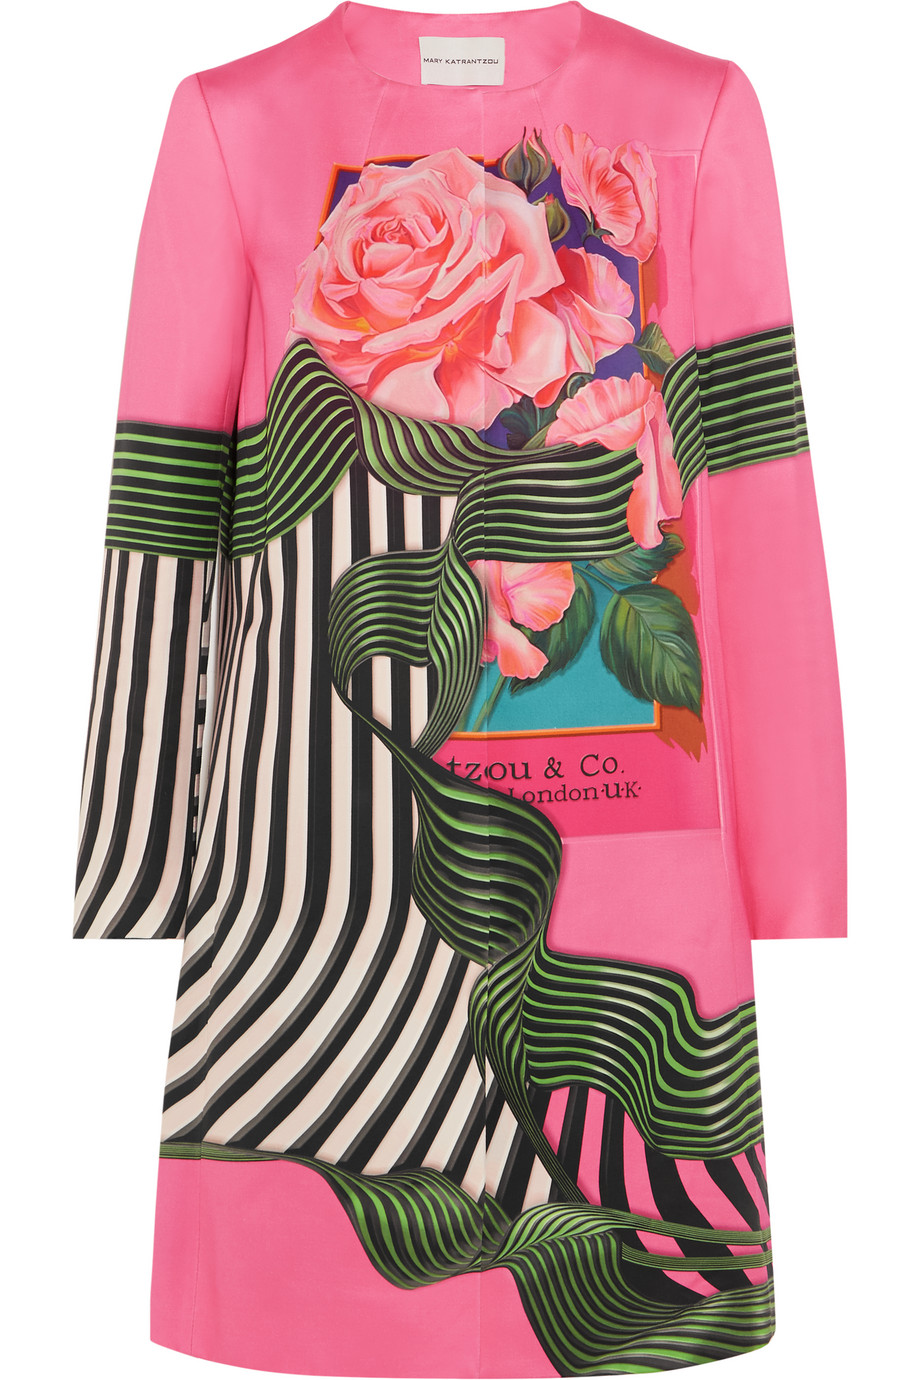 Mary Katrantzou Dash Floral-Print Cotton and Silk-Blend Coat, Bright Pink, Women's, Size: 8